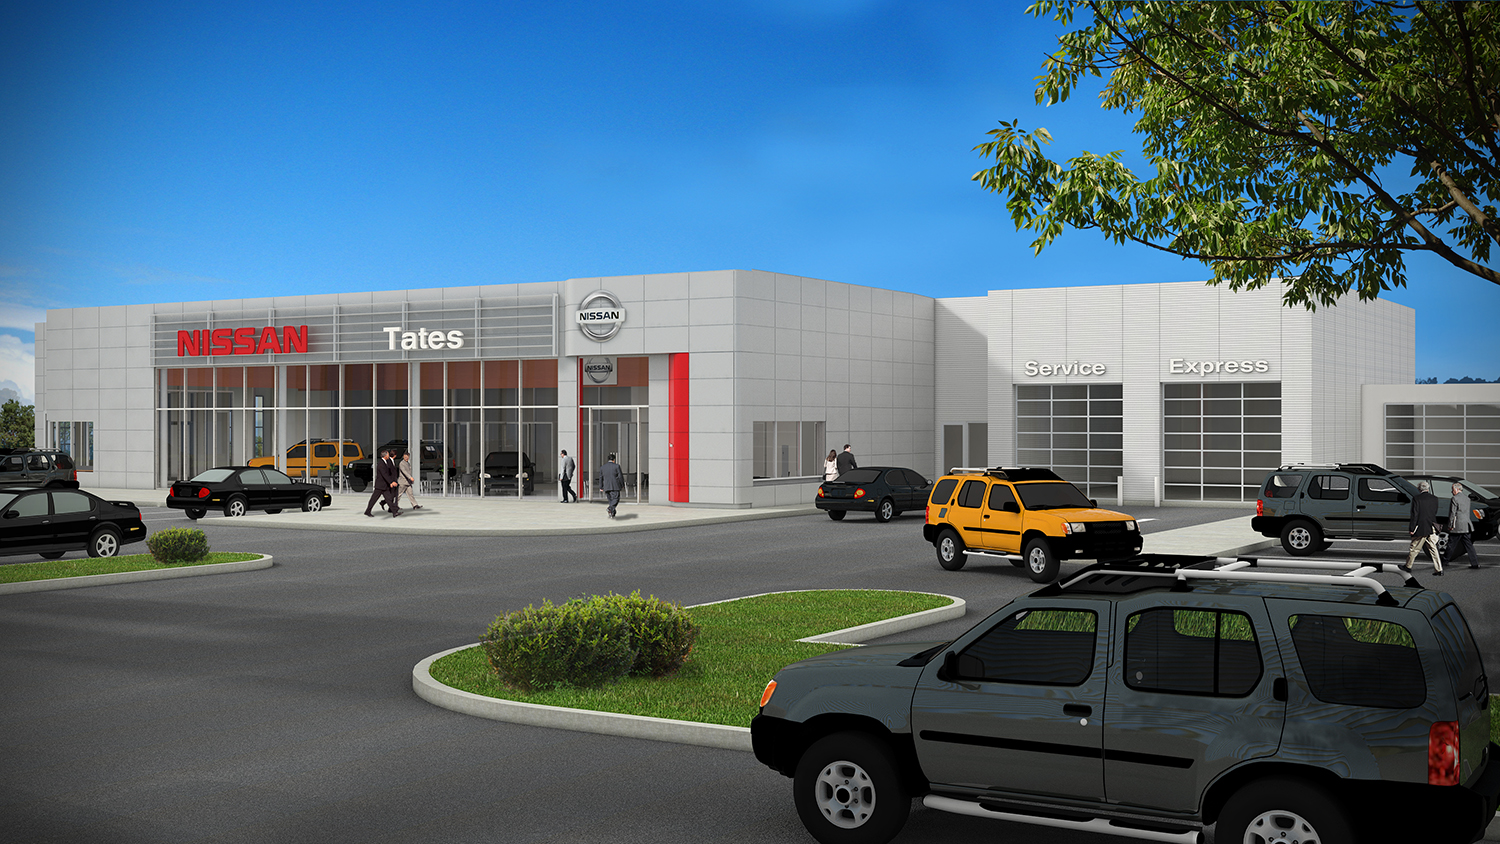 FM GROUP INCTates Nissan Gallery - Car dealerships in show low az